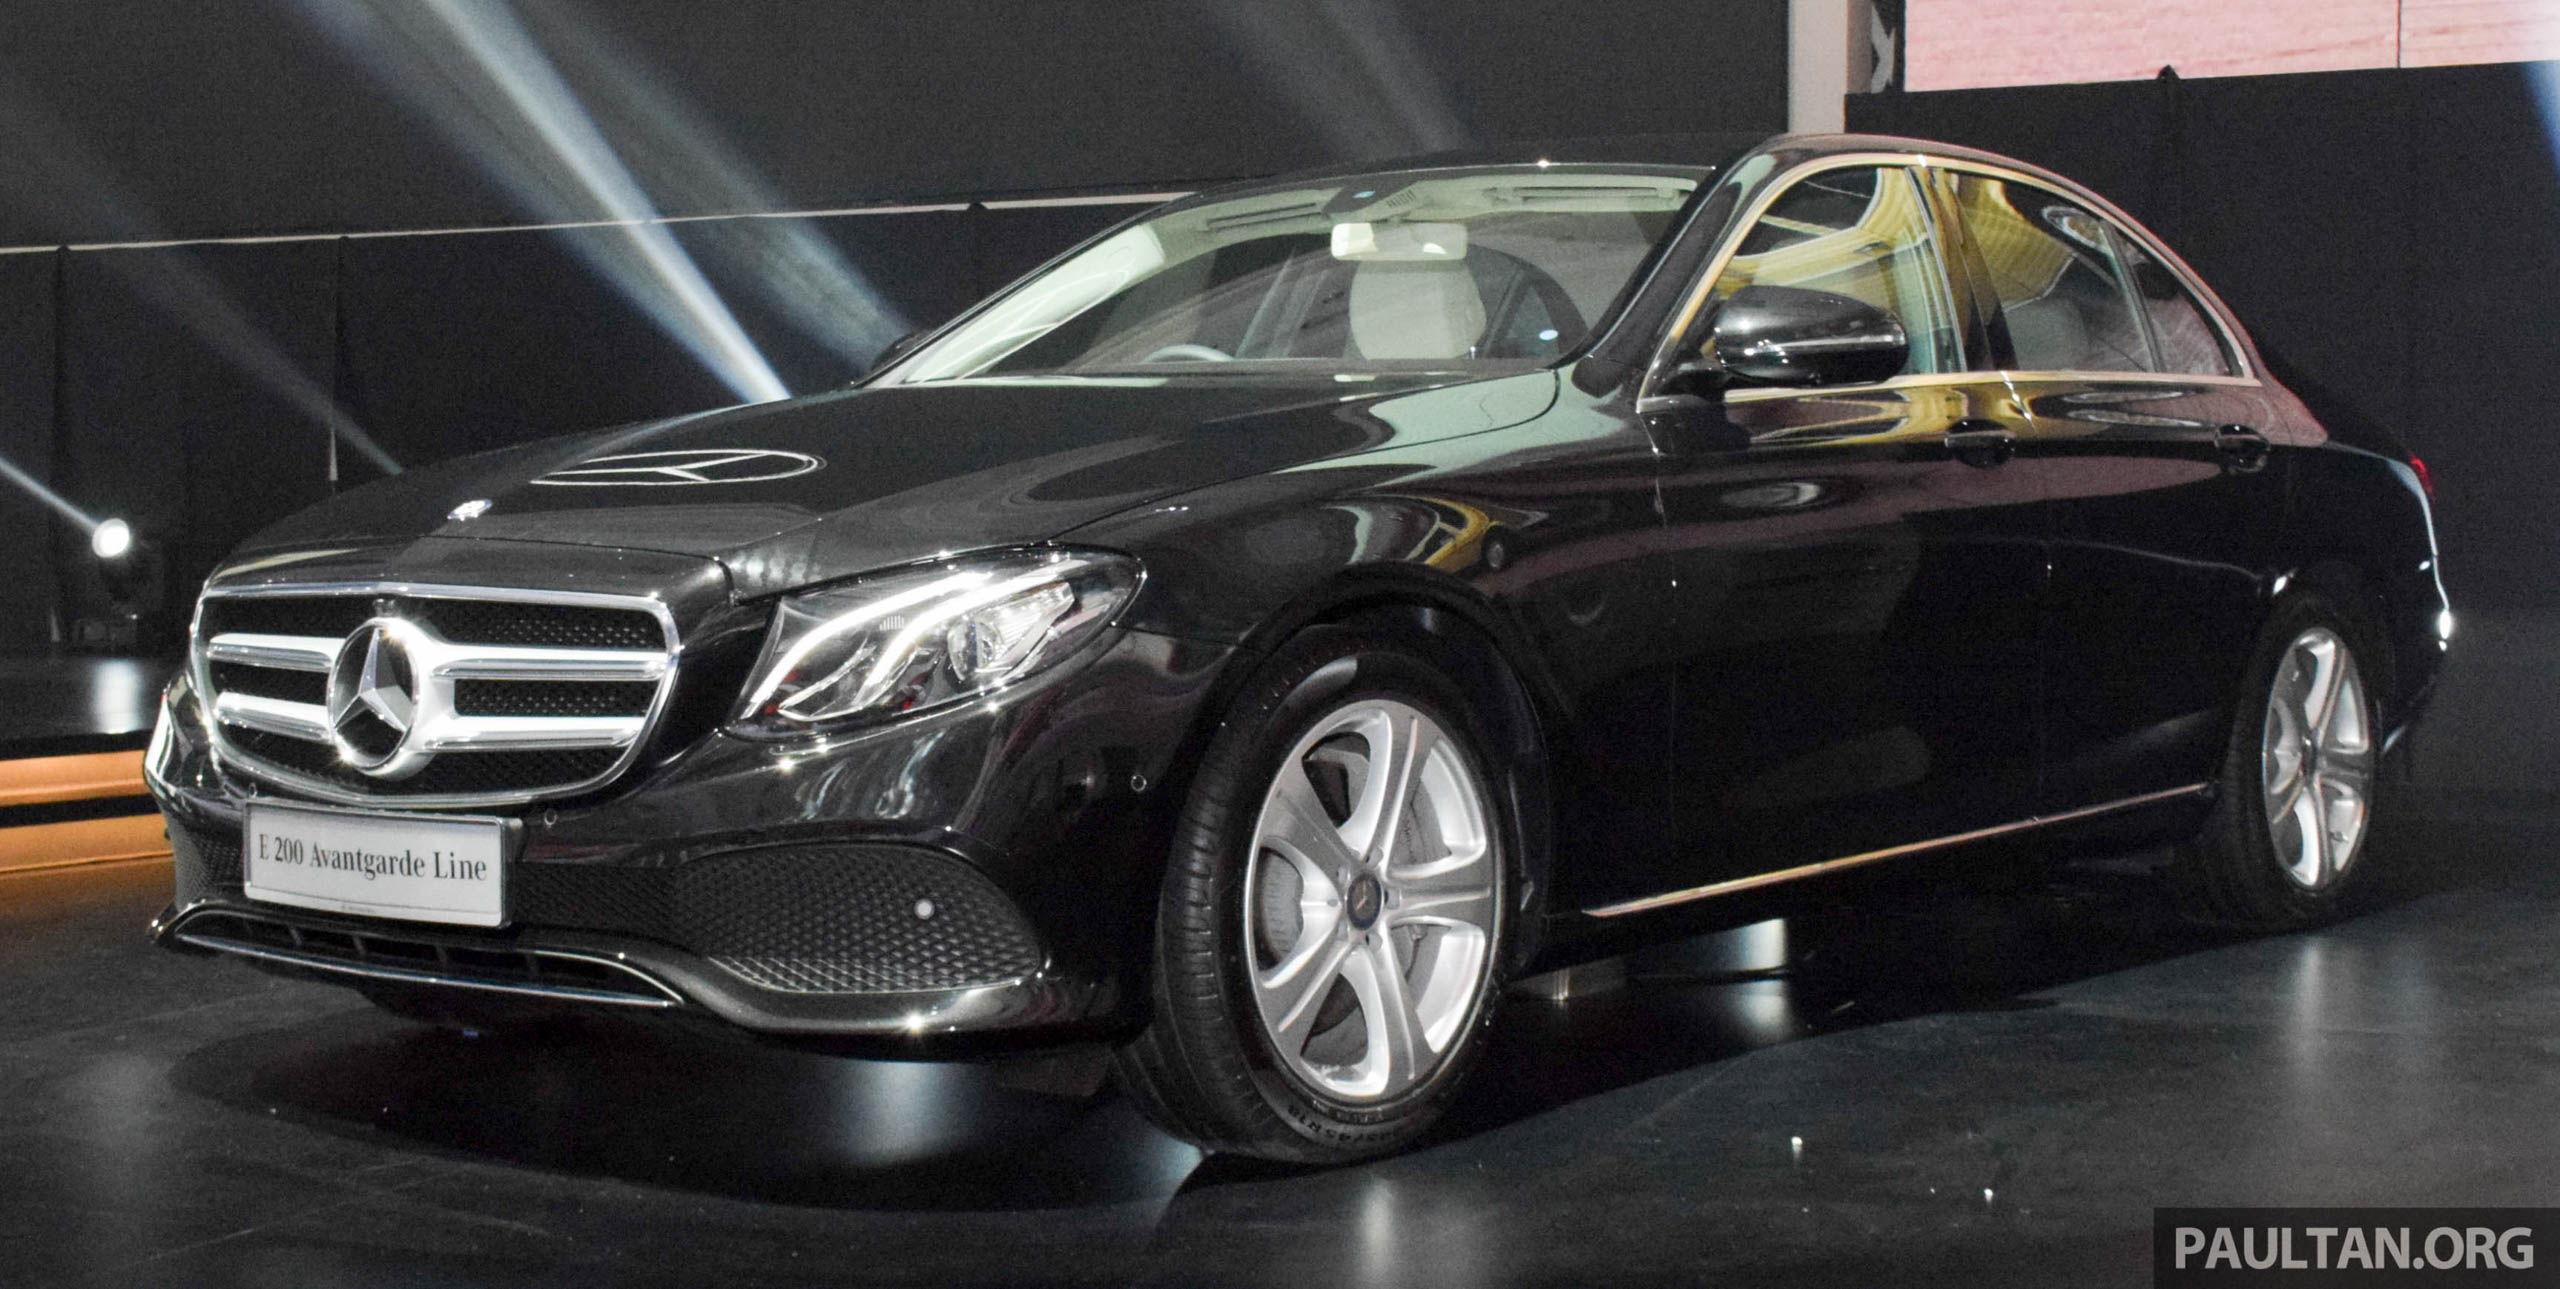 w213 mercedes benz e200 avantgarde first batch of units priced at rm386k modified equipment list. Black Bedroom Furniture Sets. Home Design Ideas